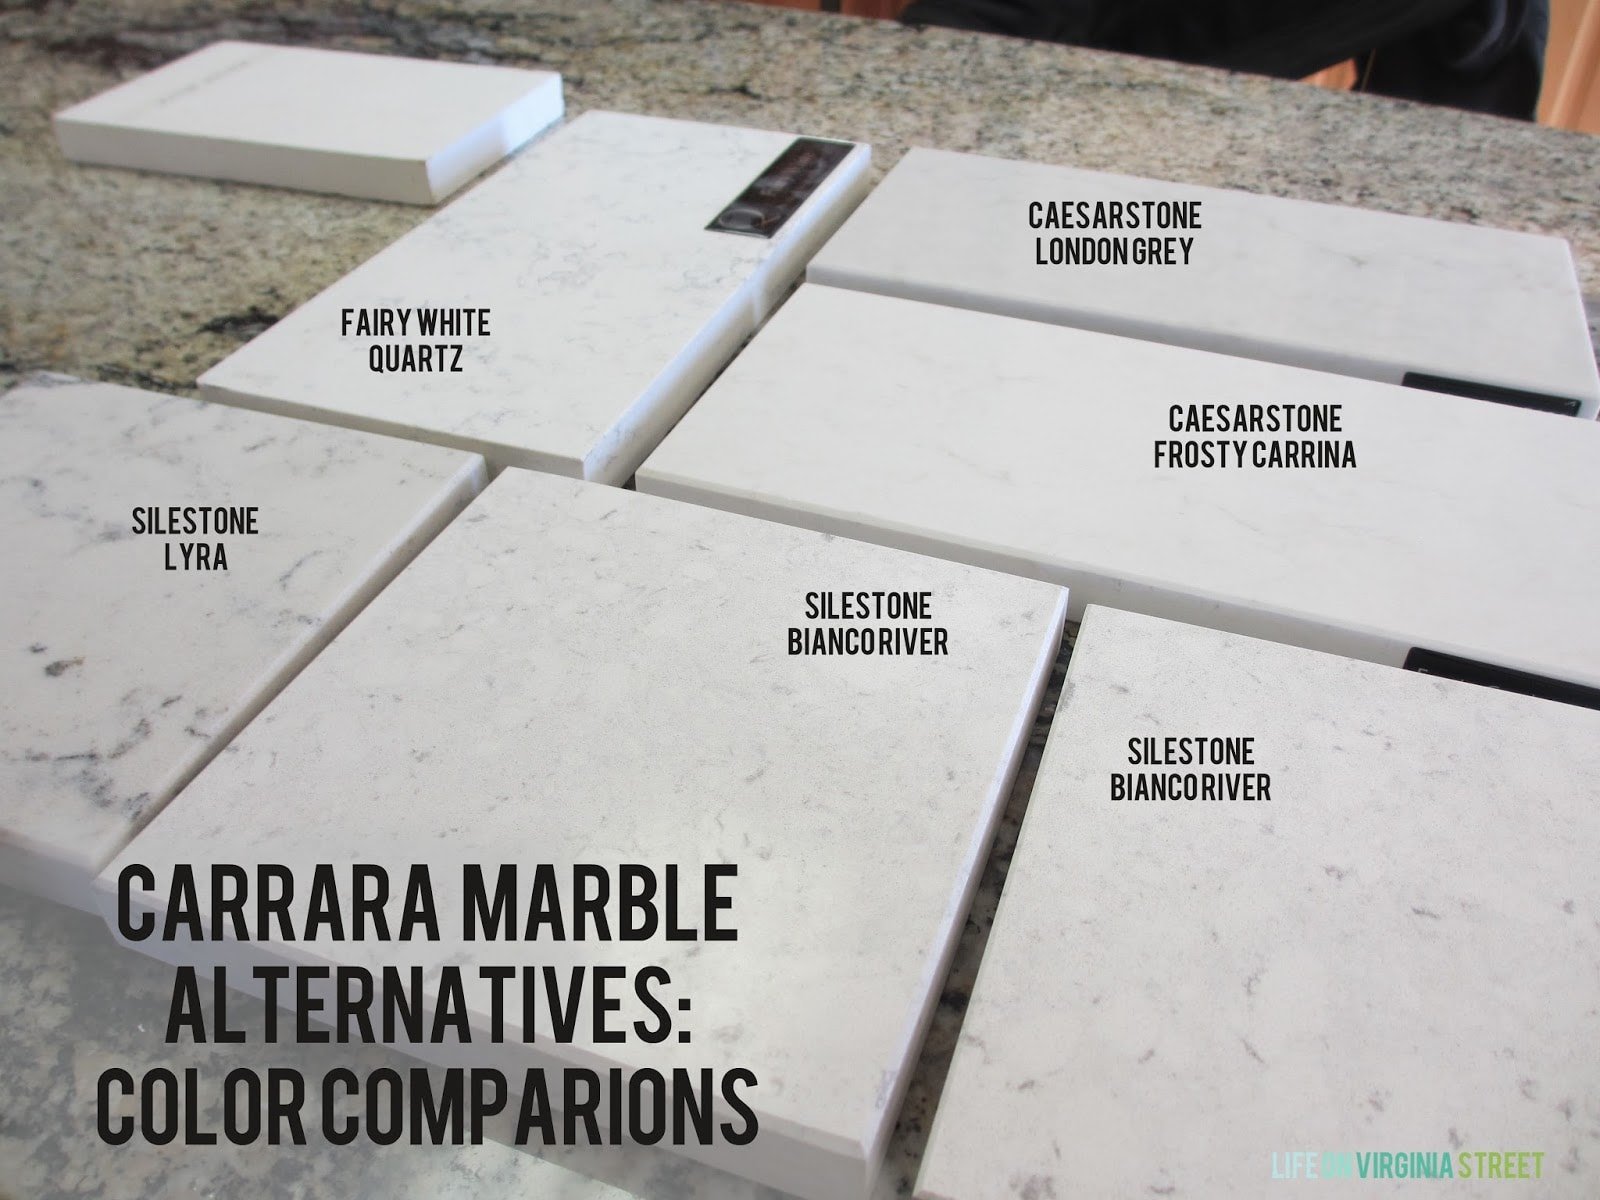 Carrara Marble Alternatives Color Comparisons This Is Really Helpful For Finding A More Durable Alternative